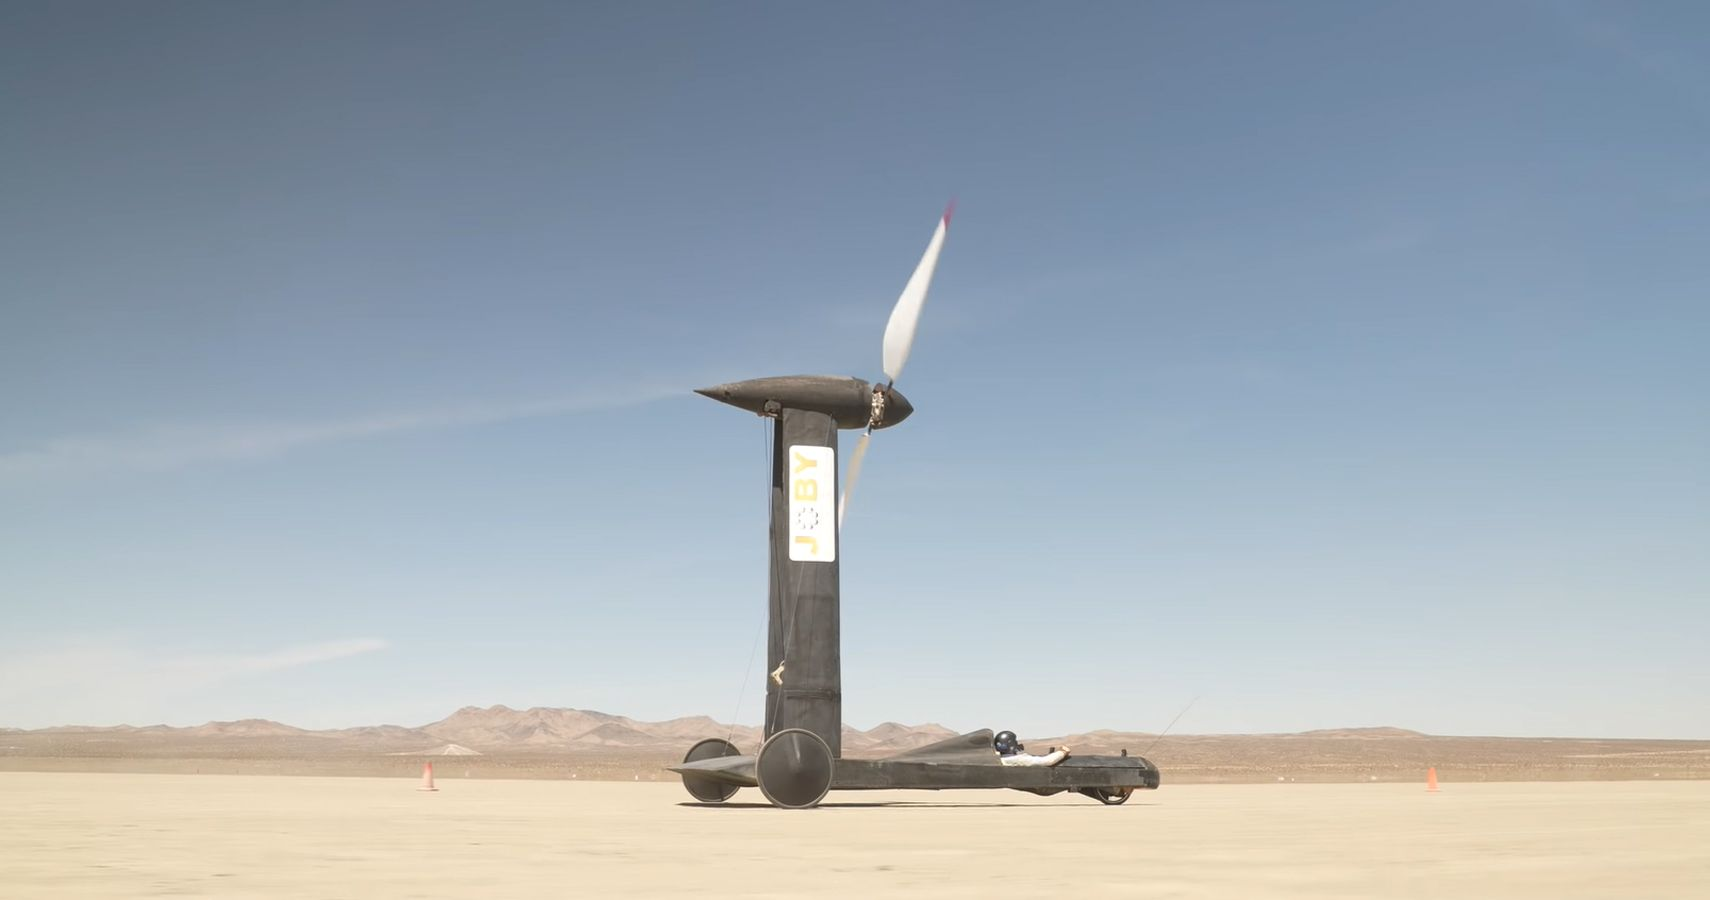 The Blackbird Wind Rover: The Most Counterintuitive Machine That Actually Works